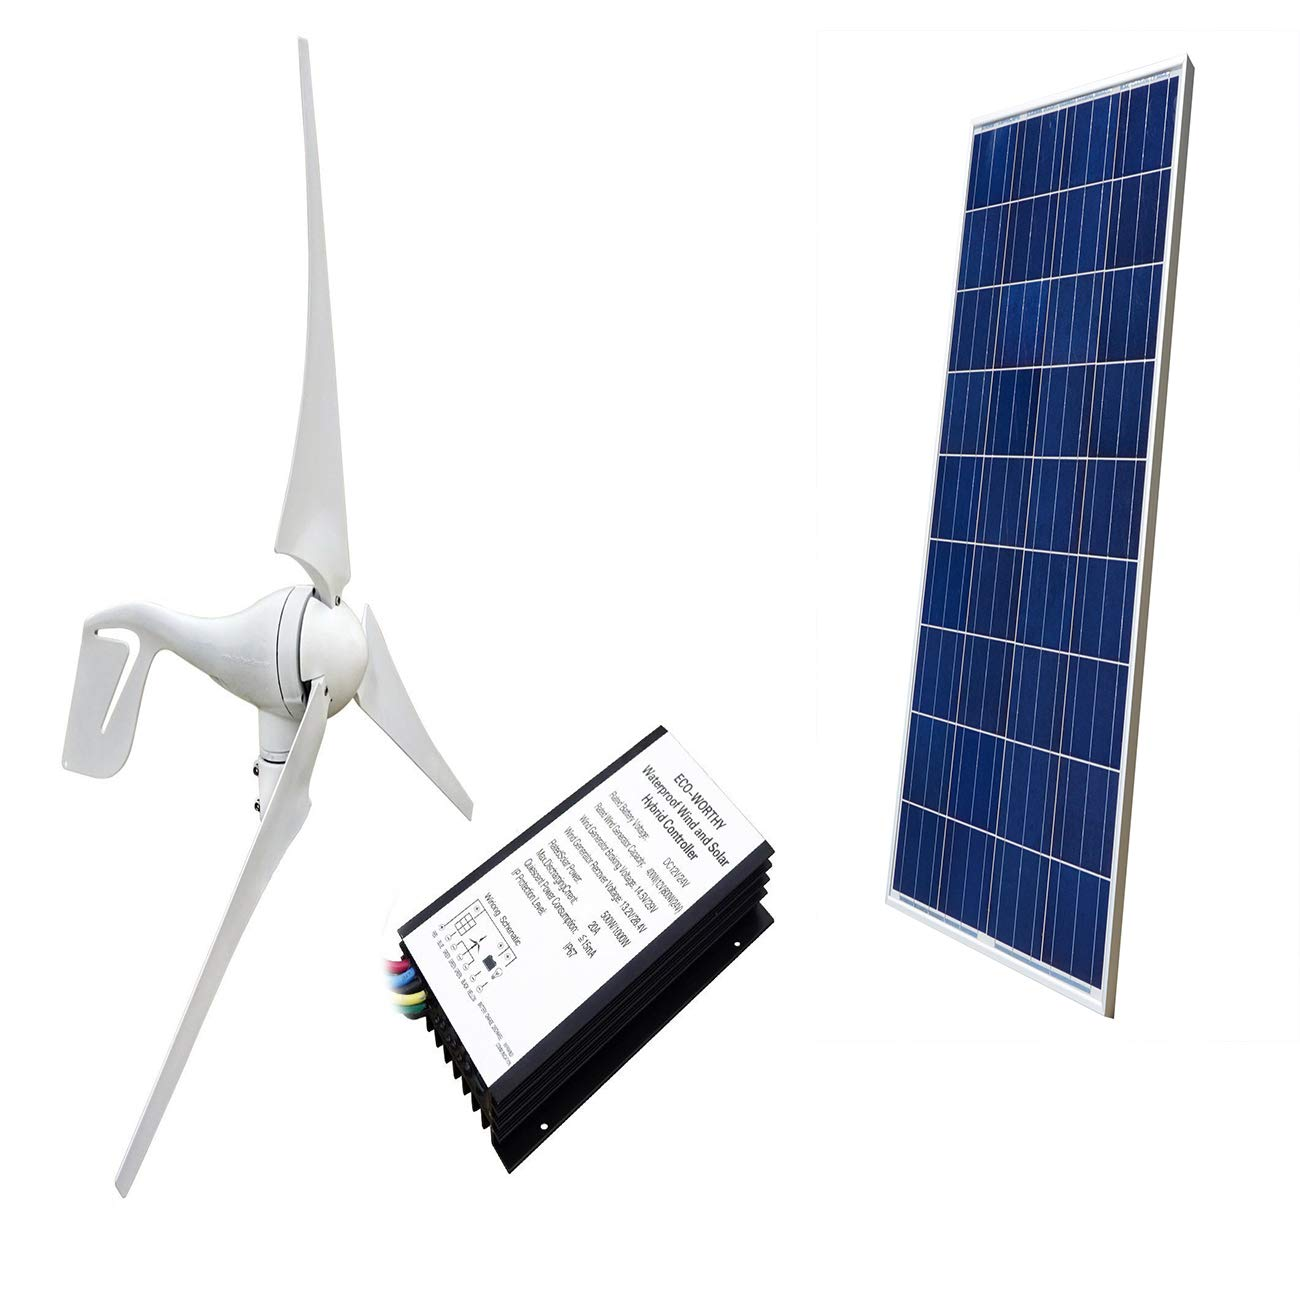 amazon com eco worthy 400w wind turbine generator 100wamazon com eco worthy 400w wind turbine generator 100w polycrystalline solar panel for off grid 12 volt battery charging garden \u0026 outdoor